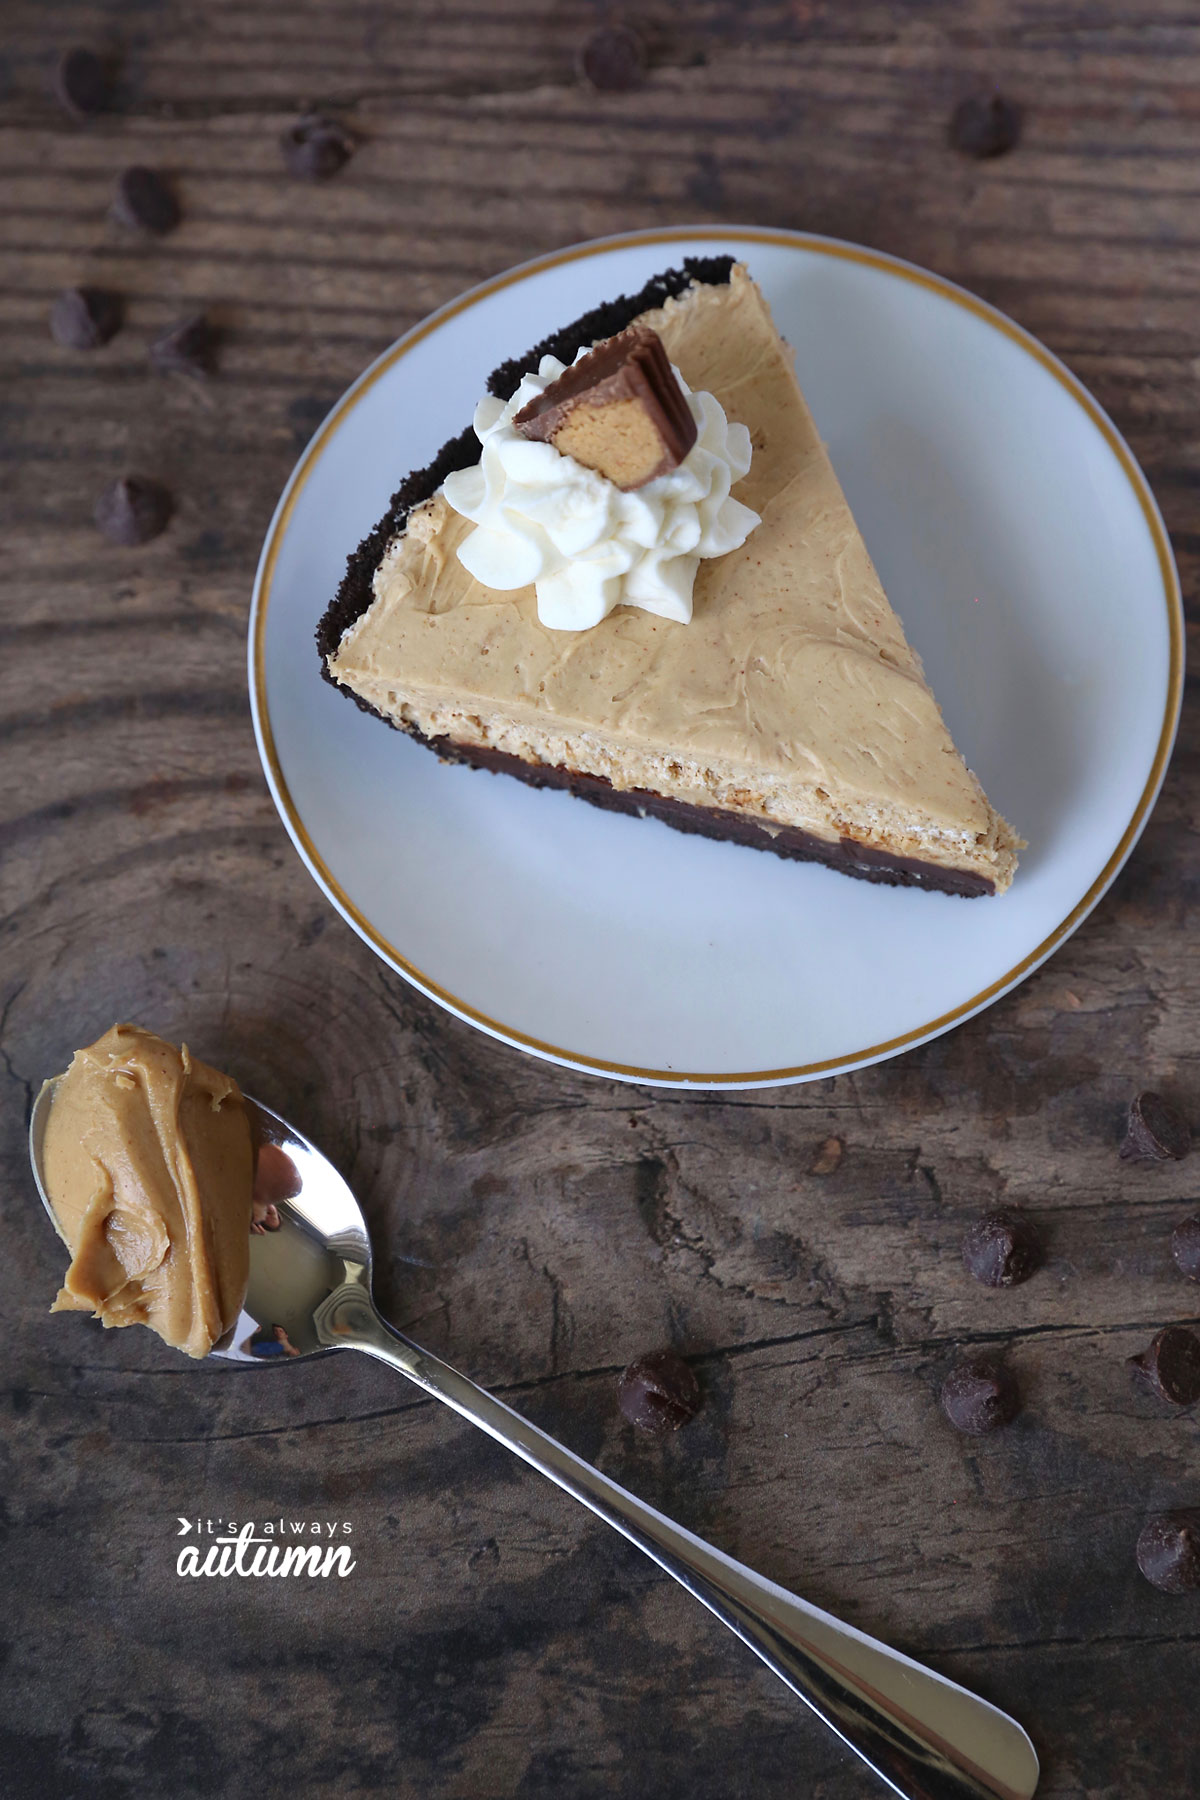 This easy chocolate peanut butter pie only takes 5 ingredients and 15 minutes to make!